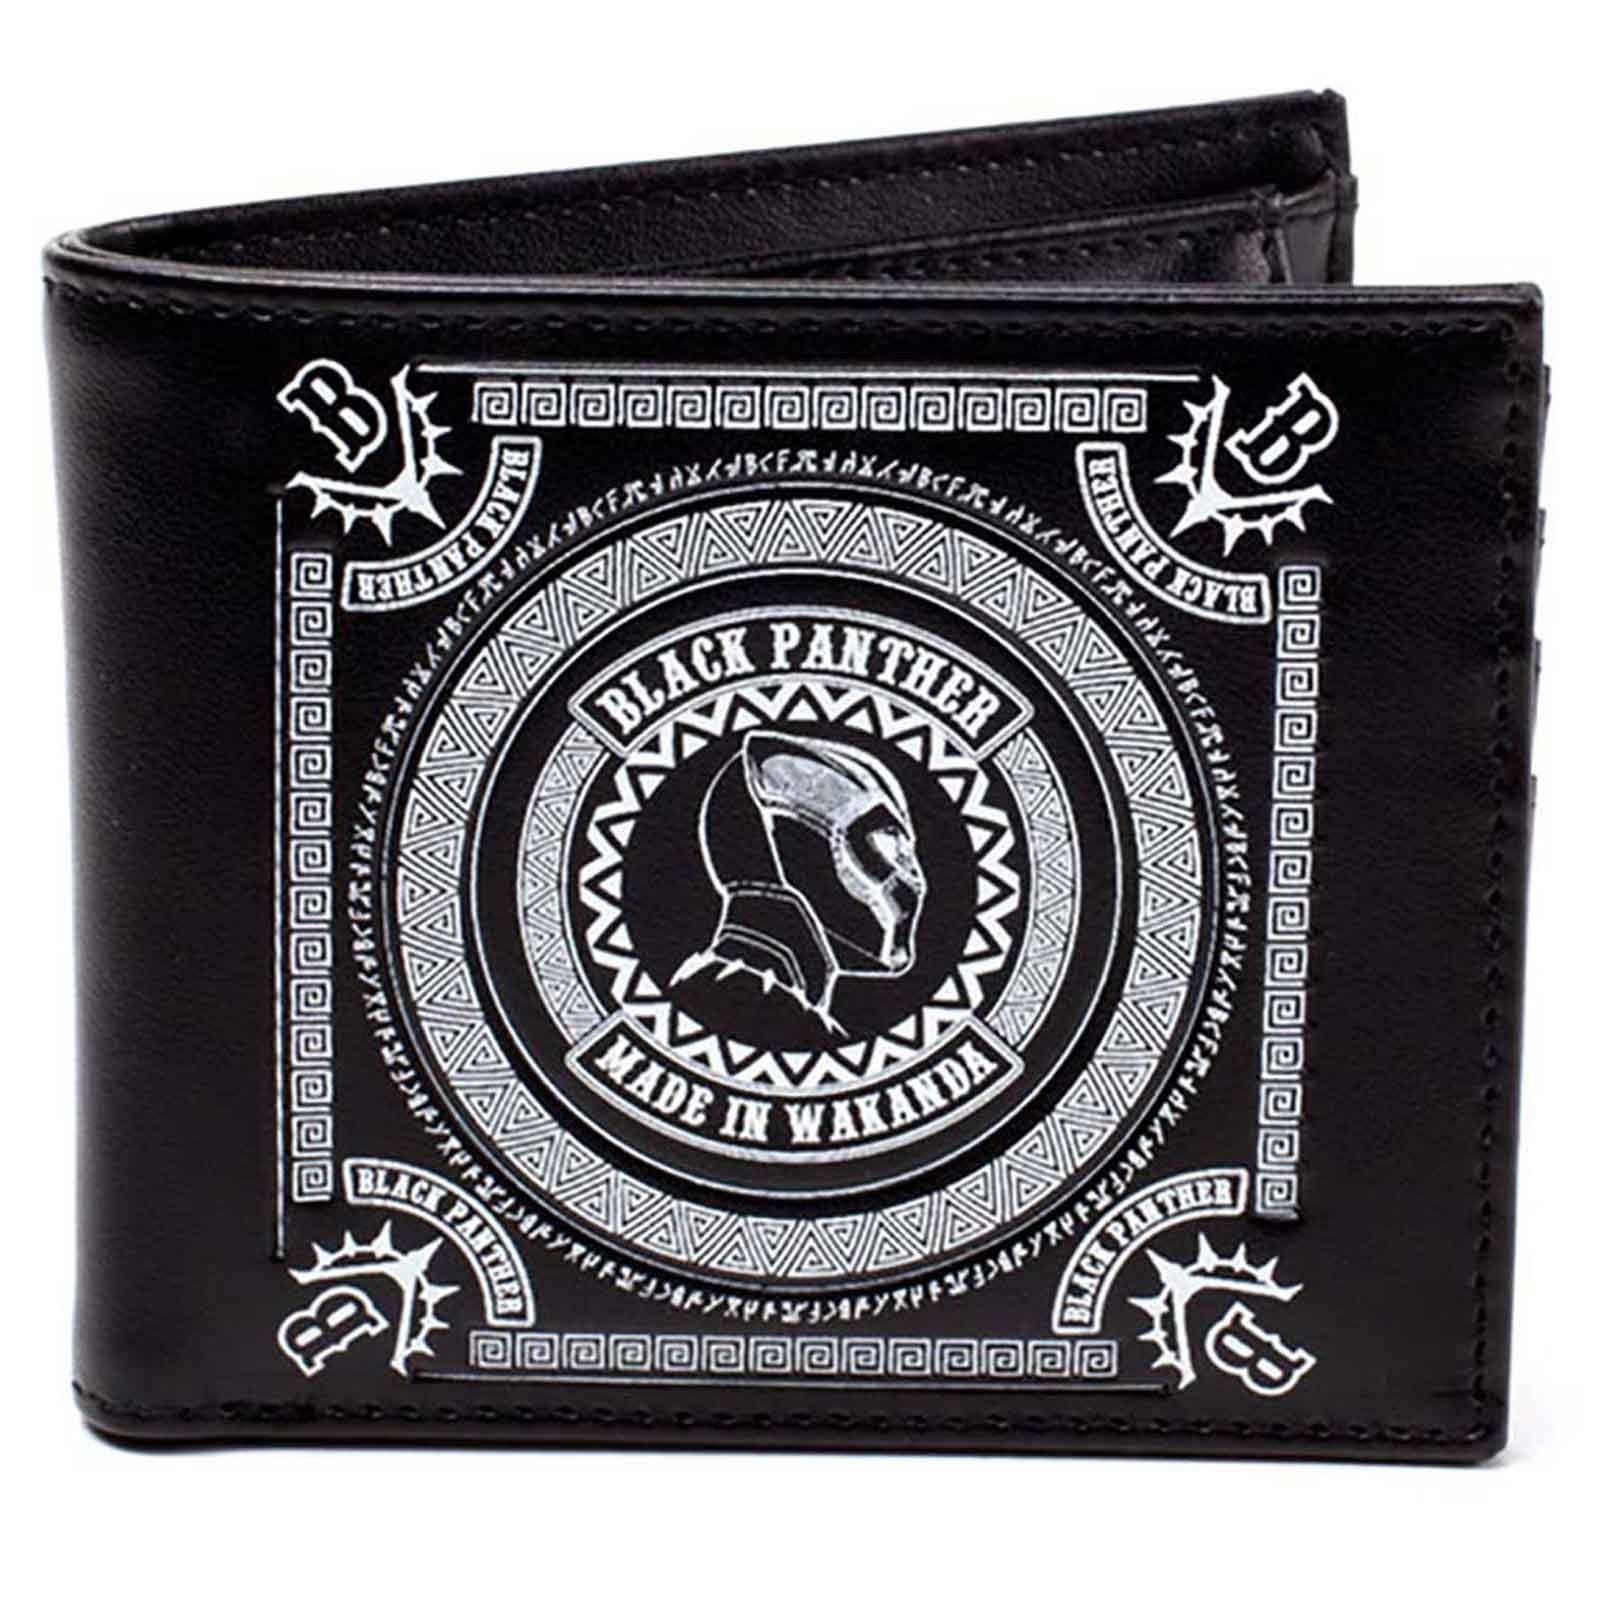 Black Panther Wallet Made In Wakanda Movie Logo Official Black Bifold